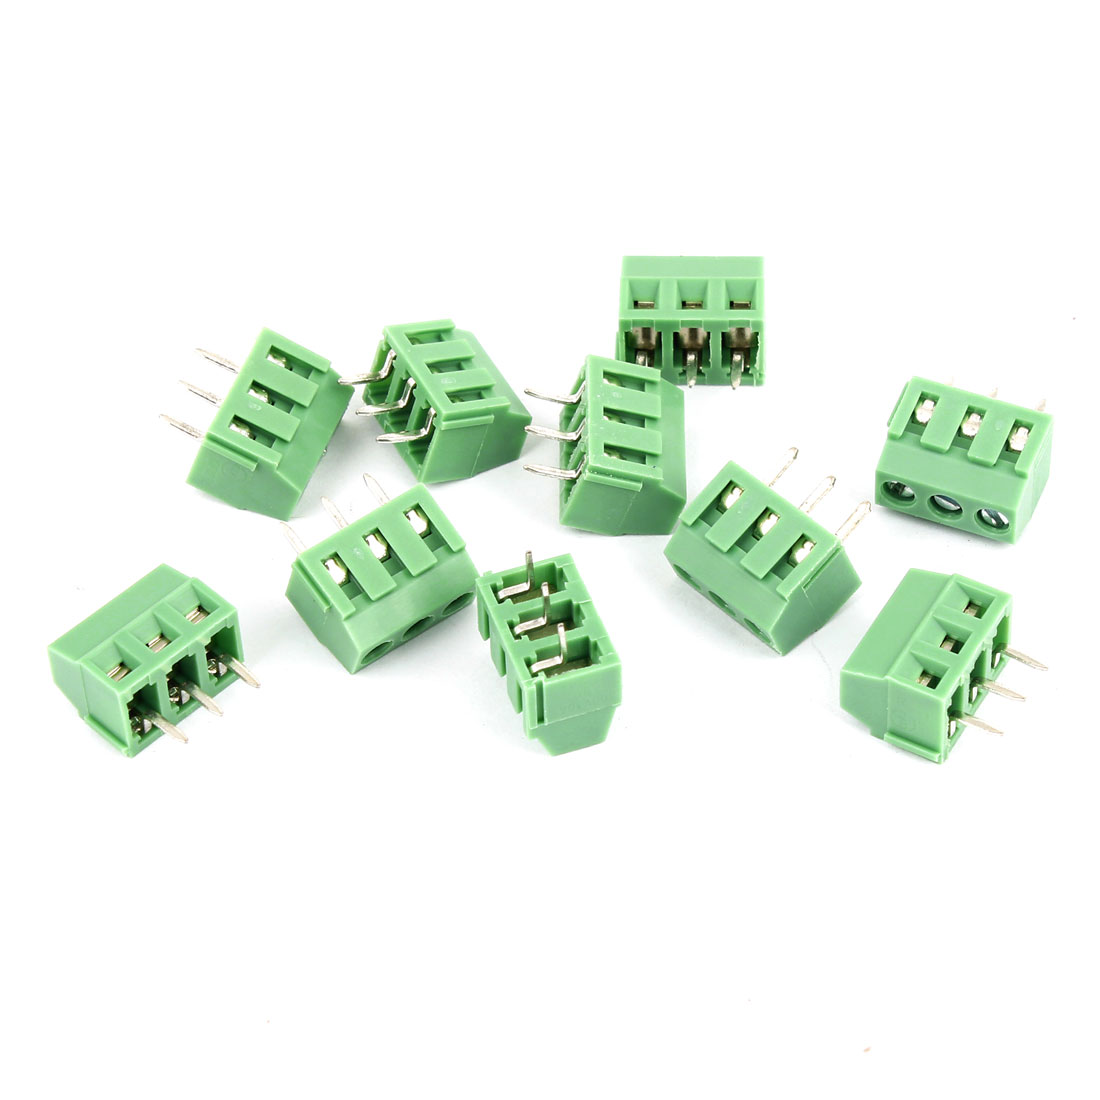 10Pcs 300V 10A 3.81mm Pitch 3 Poles Pins PCB Screw Terminal Block Connector Male Green